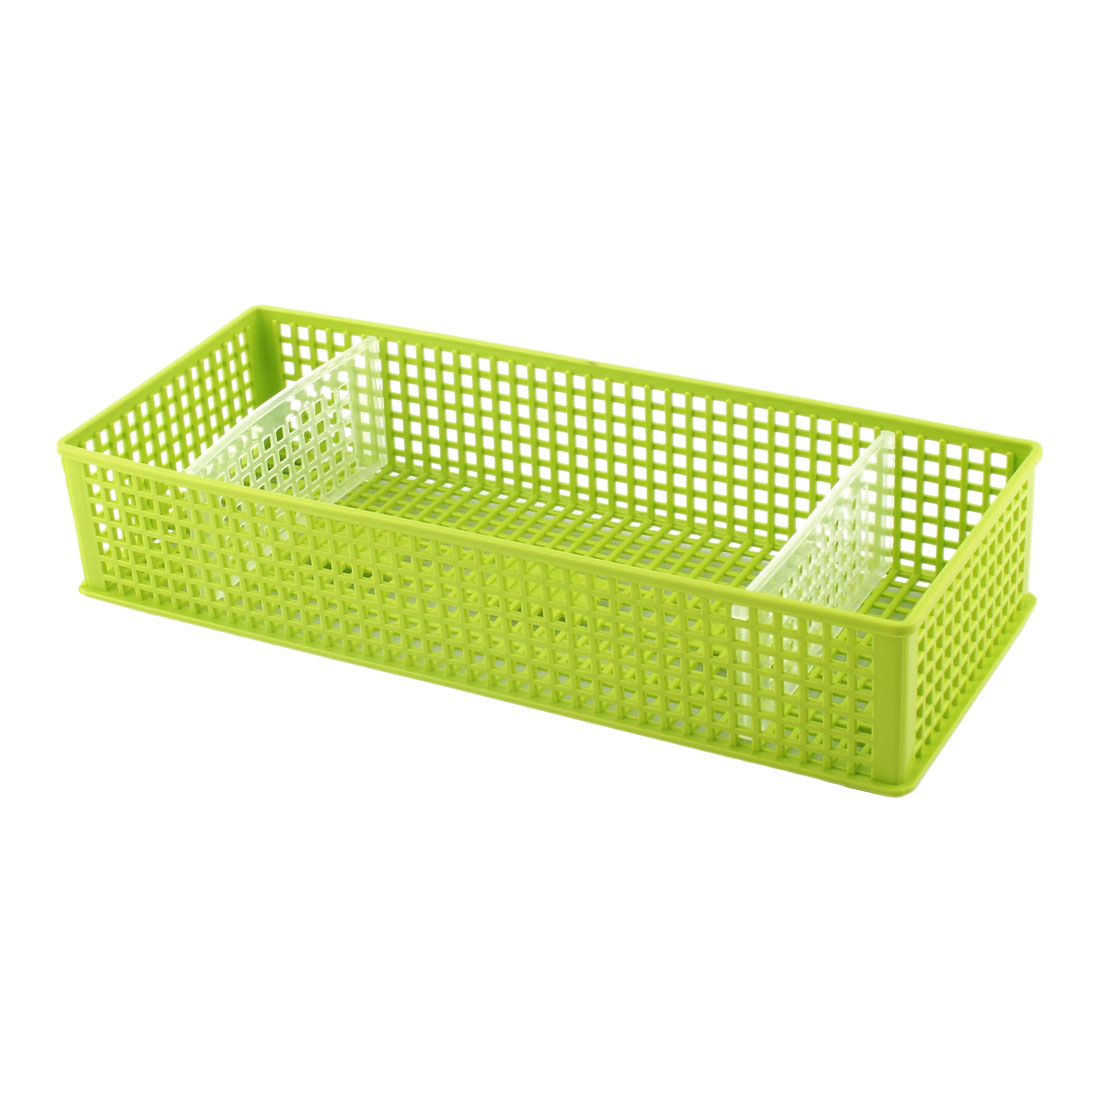 Household Plastic 3 Compartments Storage Sundries Organizer Basket Box Blue